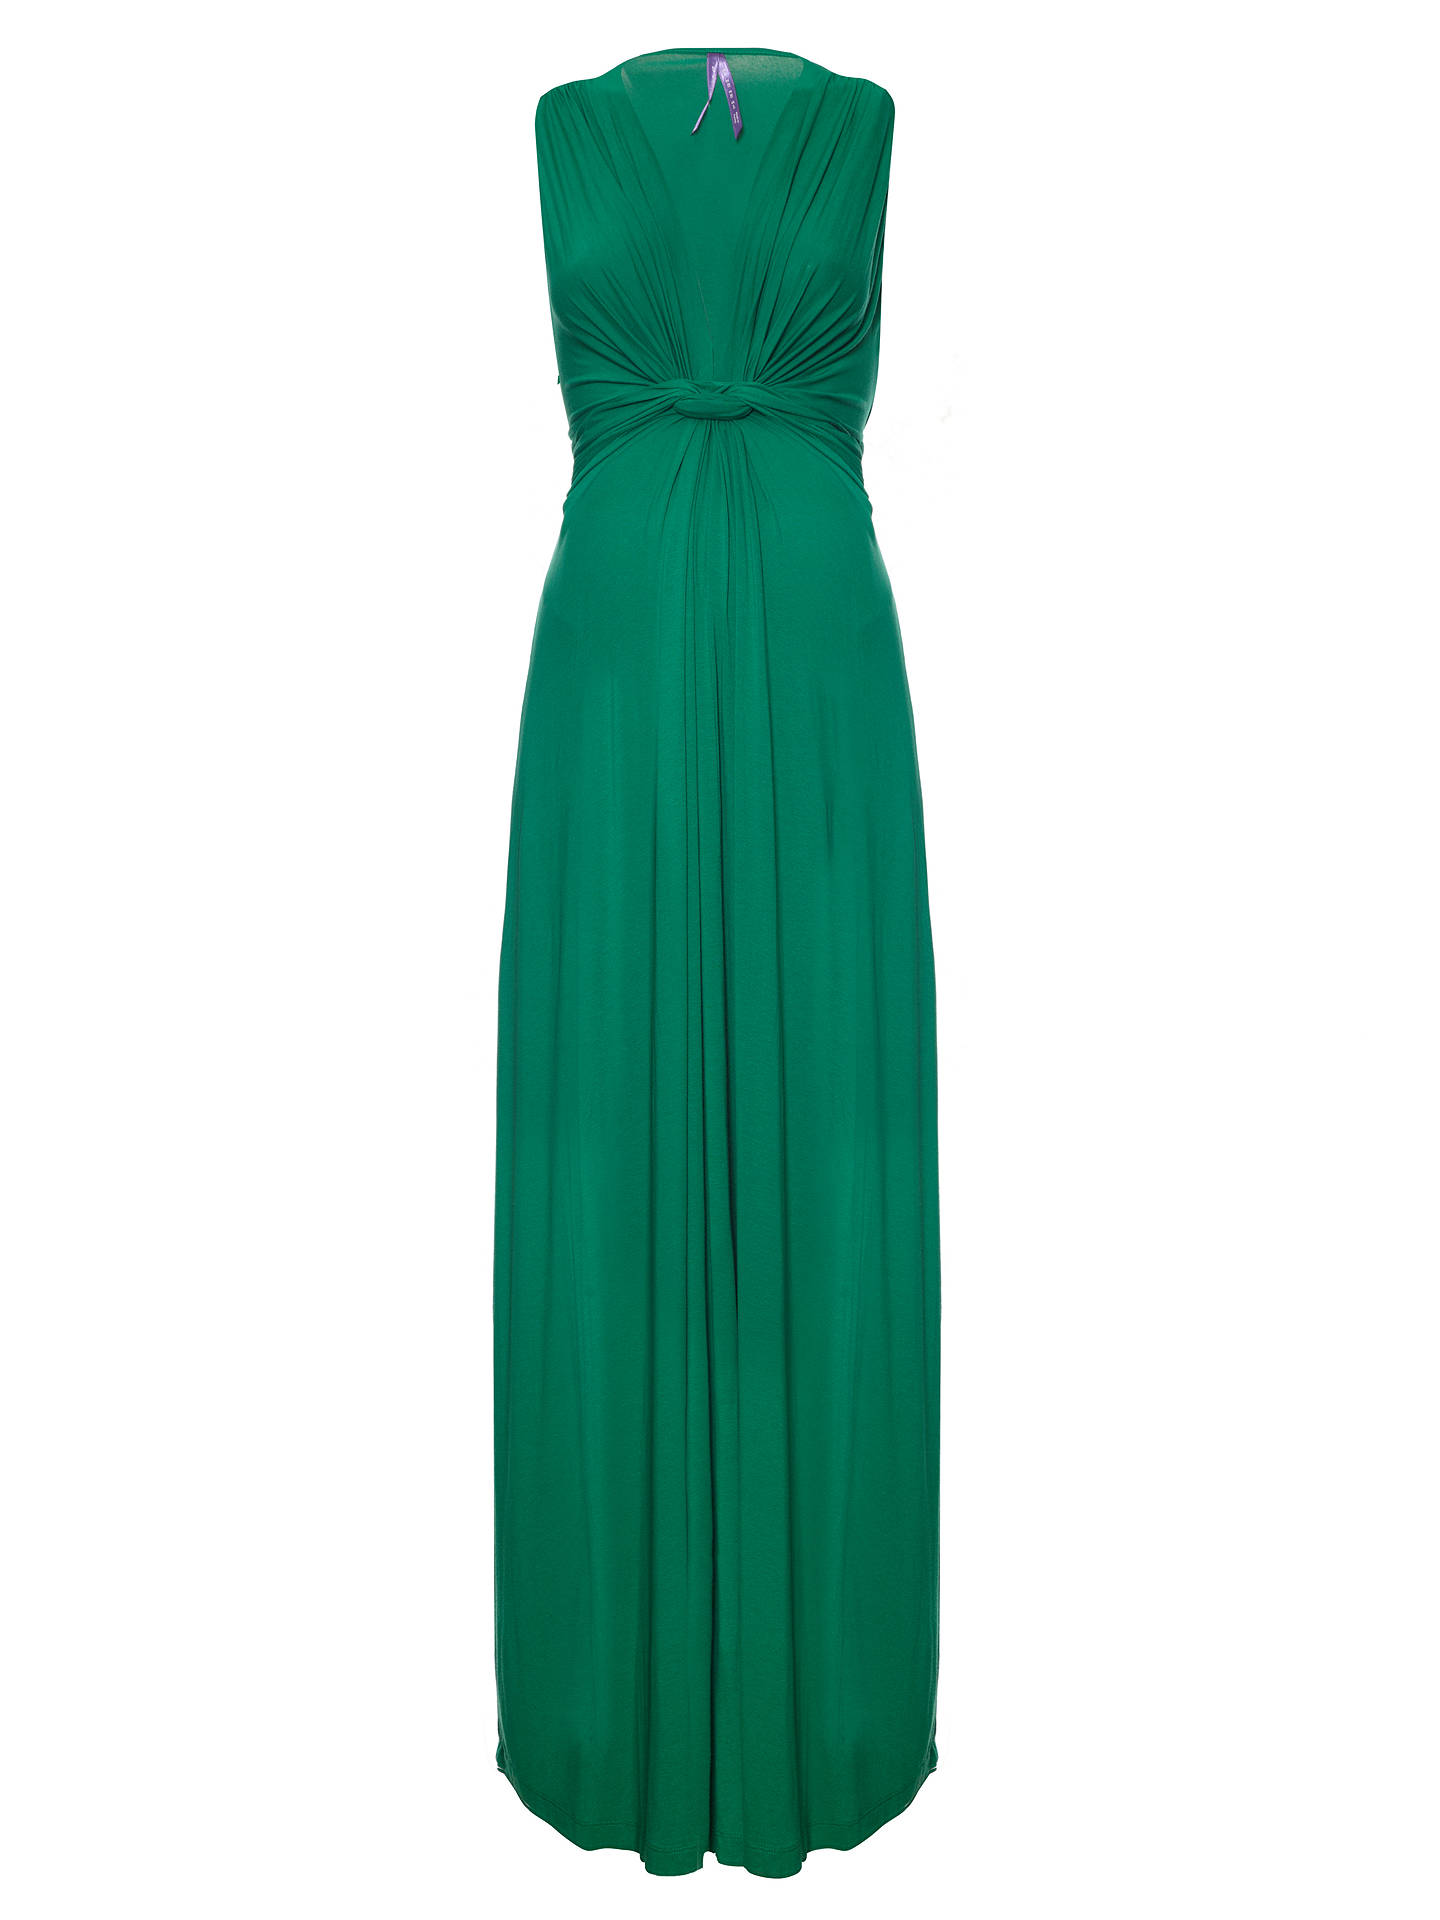 a1a55802763dac Buy Séraphine Knot Front Maxi Maternity Dress